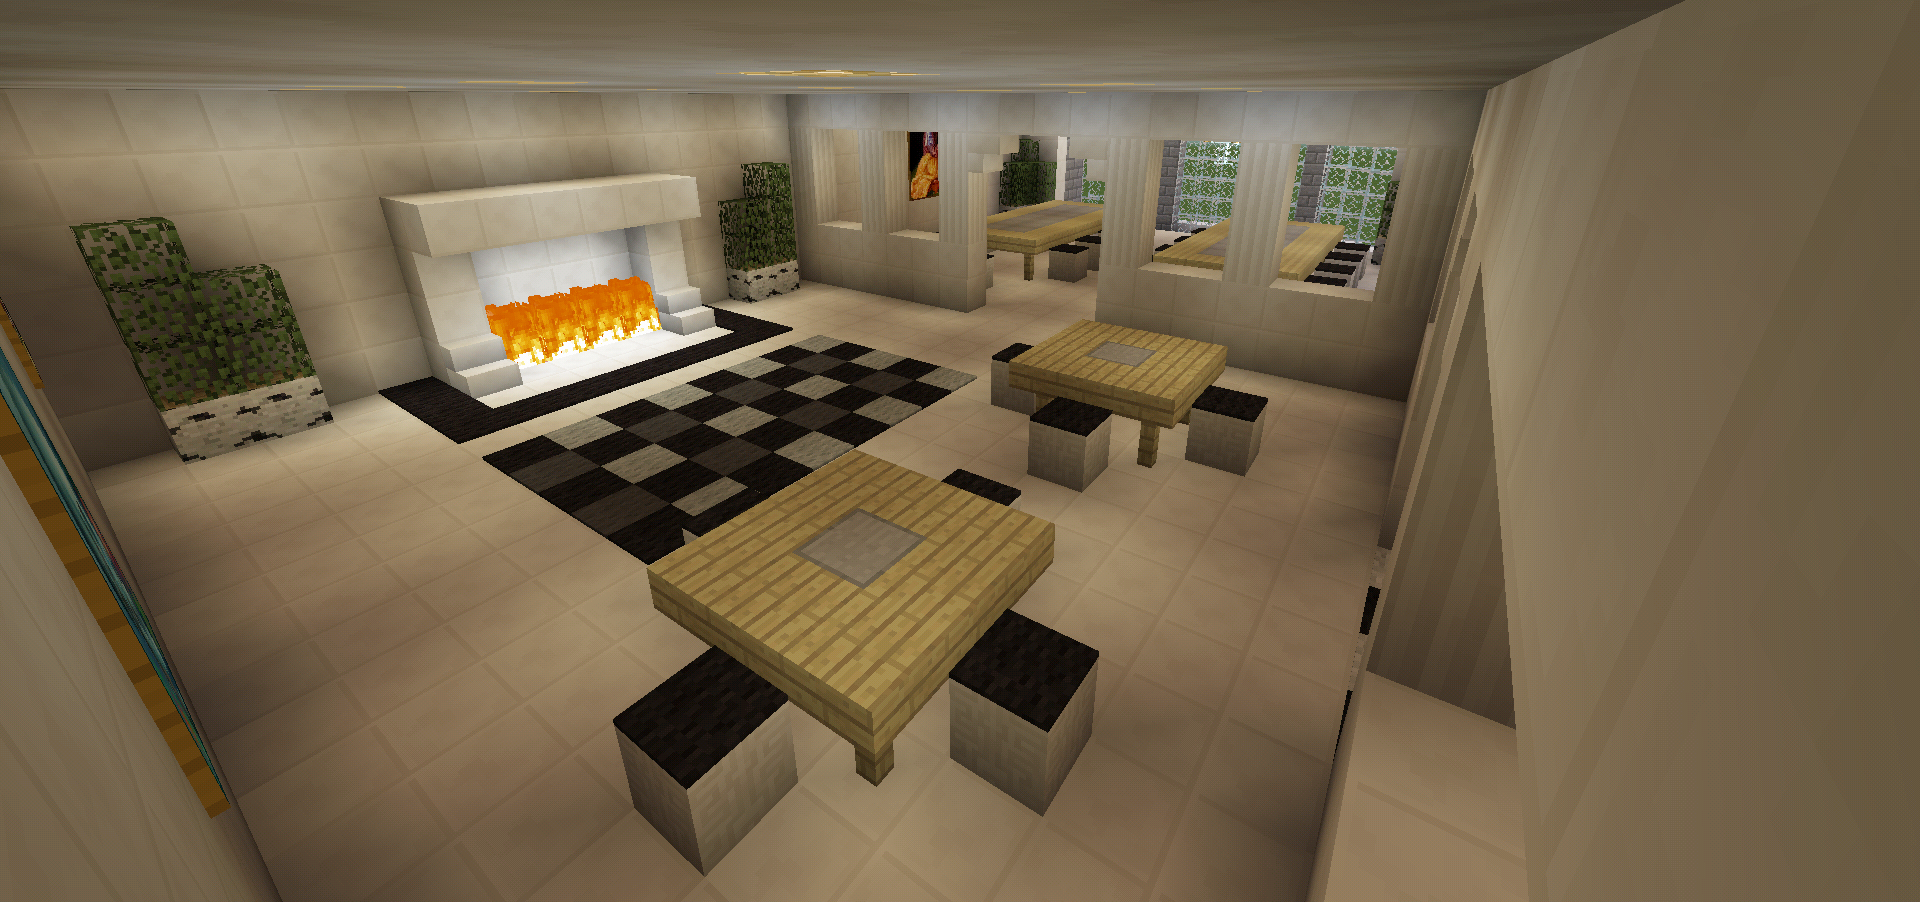 Minecraft breakfast nook dining table room hall fireplace minecraft creations pinterest - Table d alchimie minecraft ...